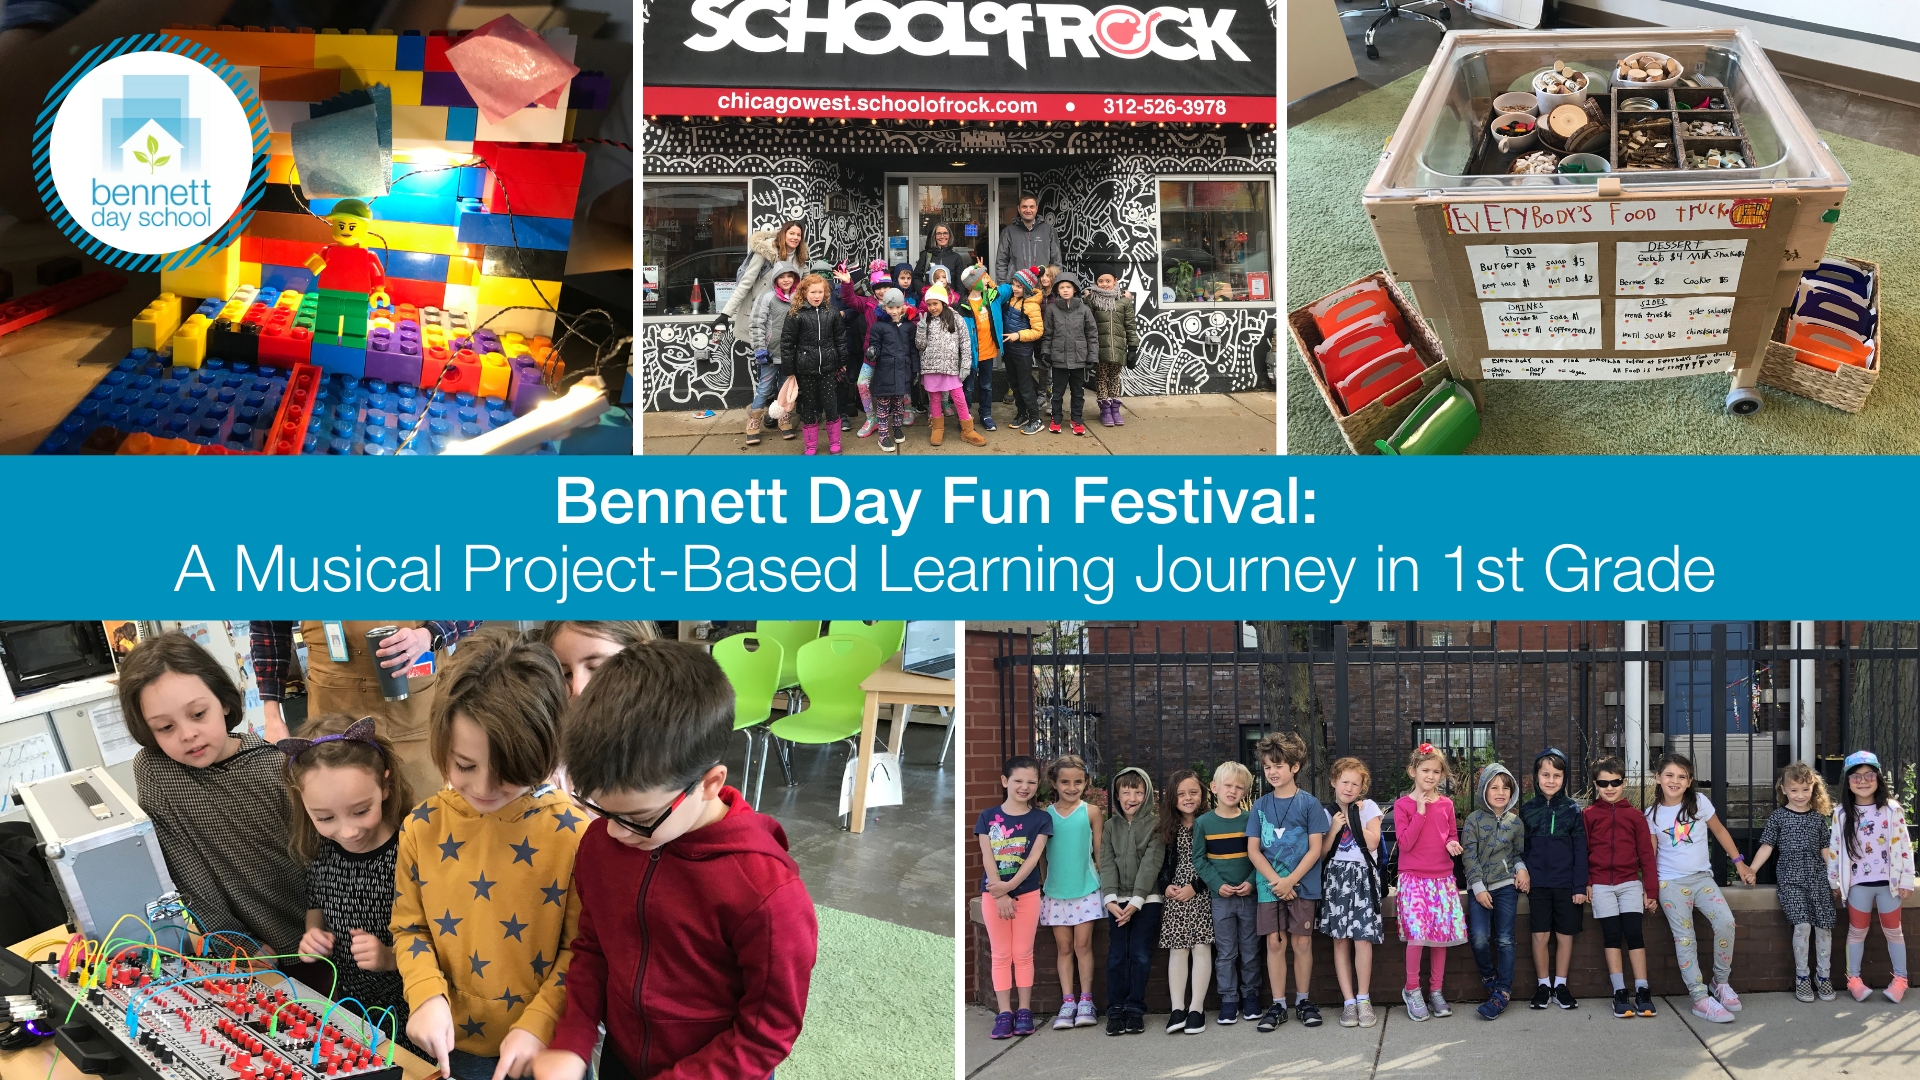 Bennett Day Fun Festival: A Musical Project-Based Learning Journey in 1st Grade